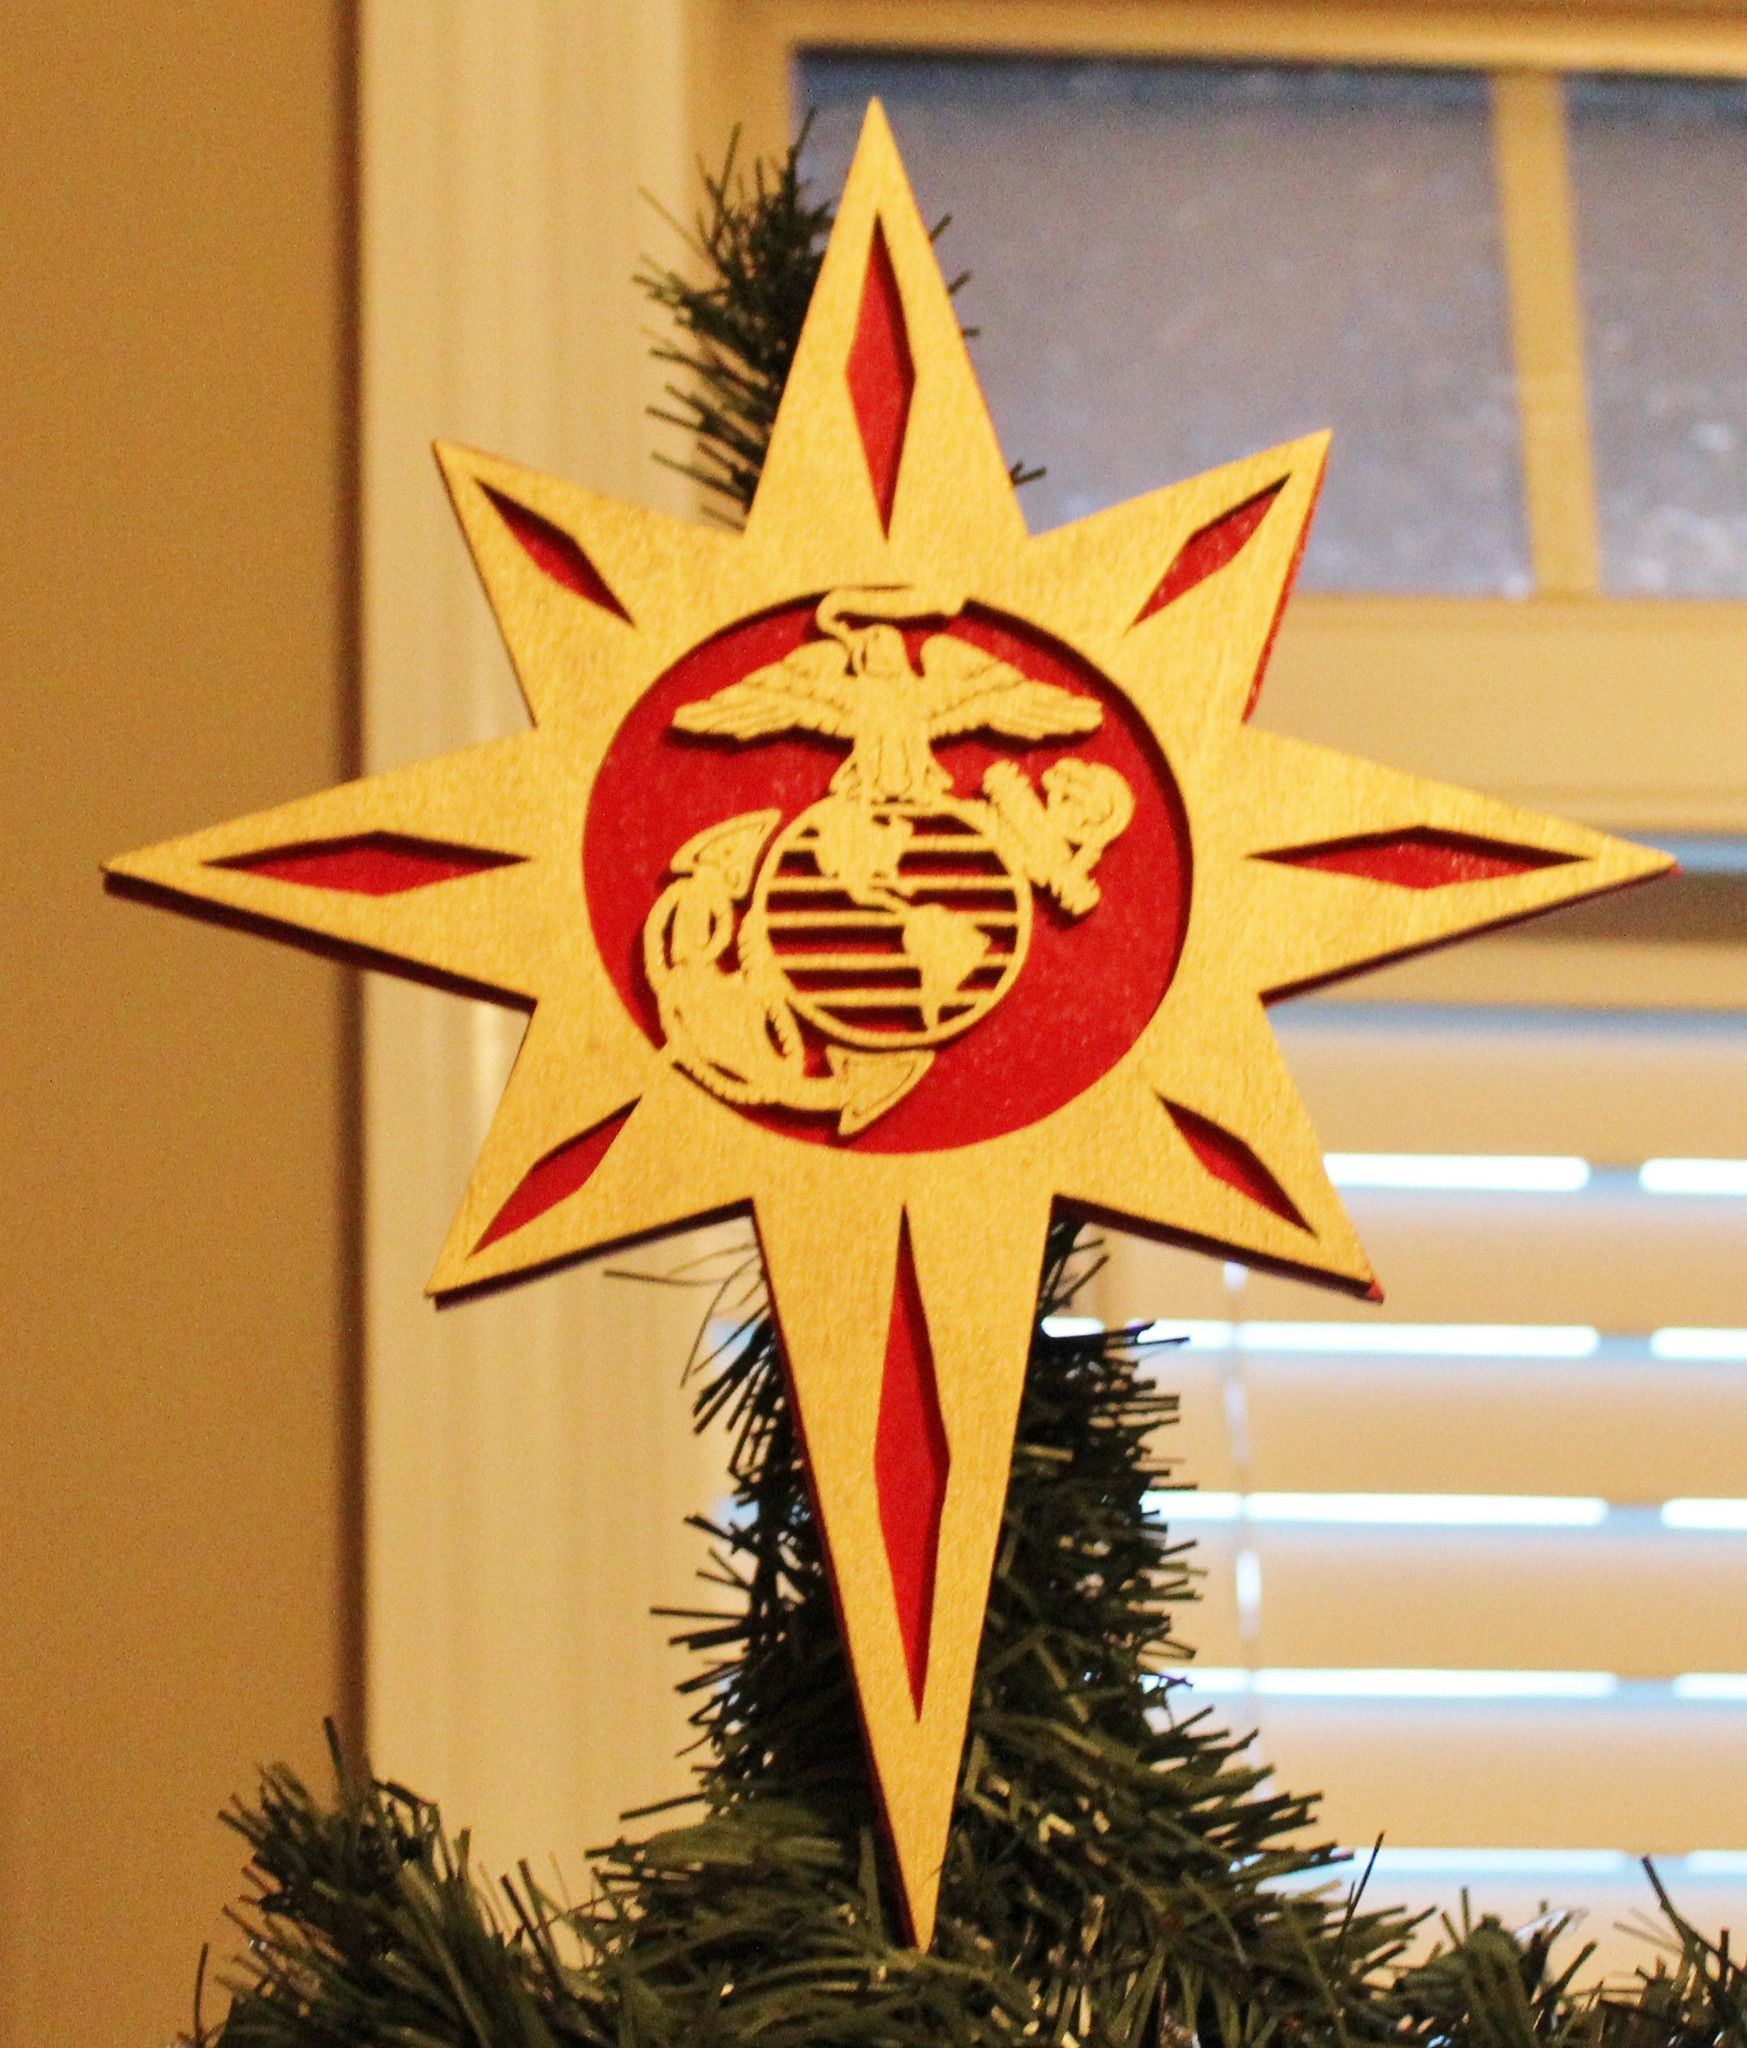 Official Hobbyist Of The Usmc License 11603 Marine Corps Christmas Tree Topper Display Your Marine Pride With This Custom Made Christmas Tree Topper